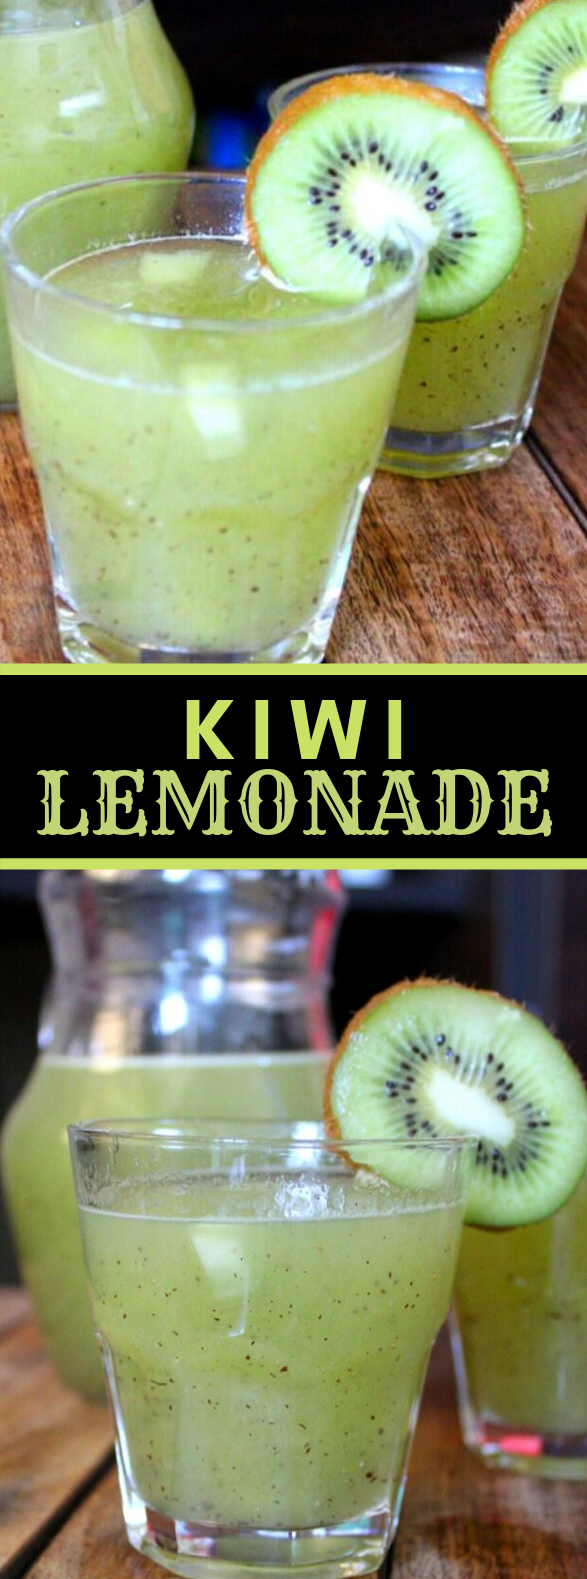 Kiwi Lemonade, Refreshing Summer Moctail/Drink (Non Alcoholic) #drinks #cooling